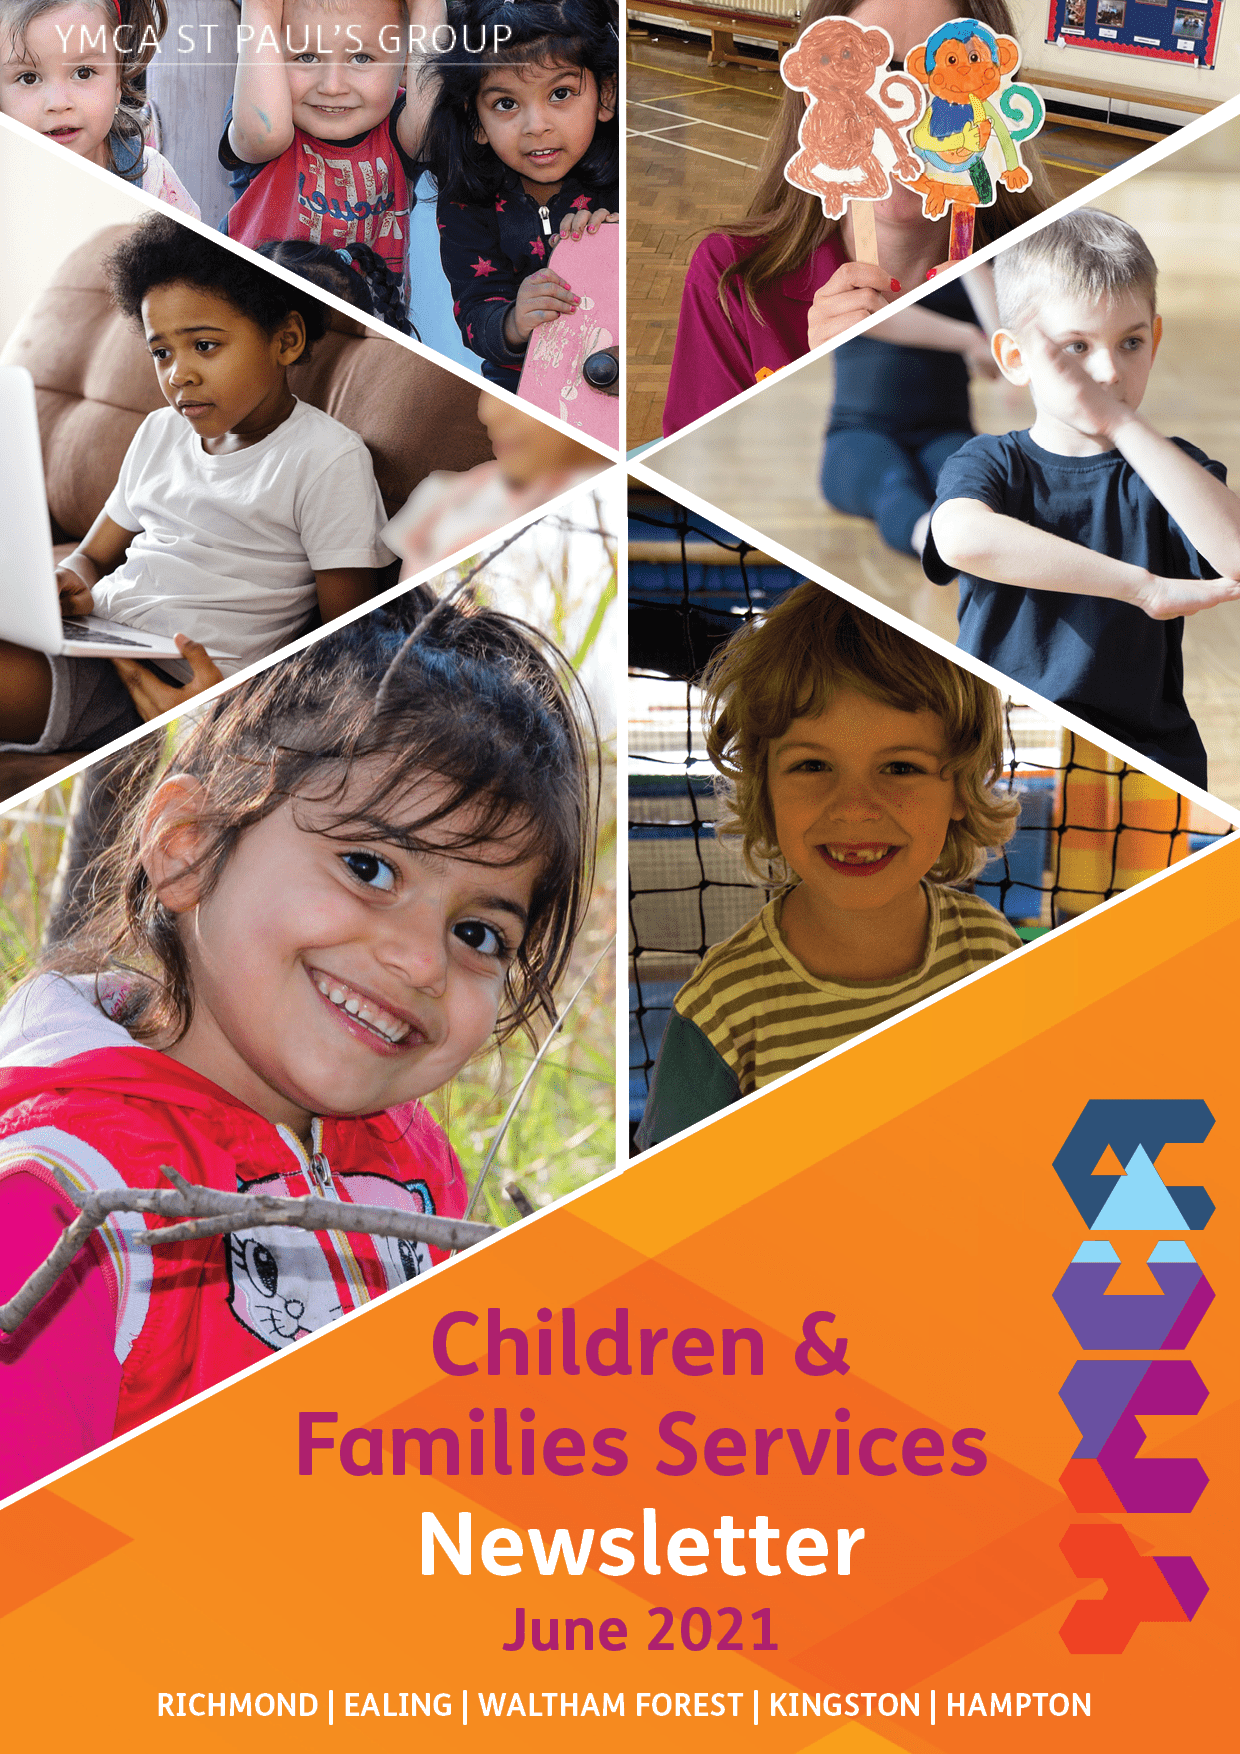 Children and Families Newsletter June 2021 - Children, Youth and Family Work